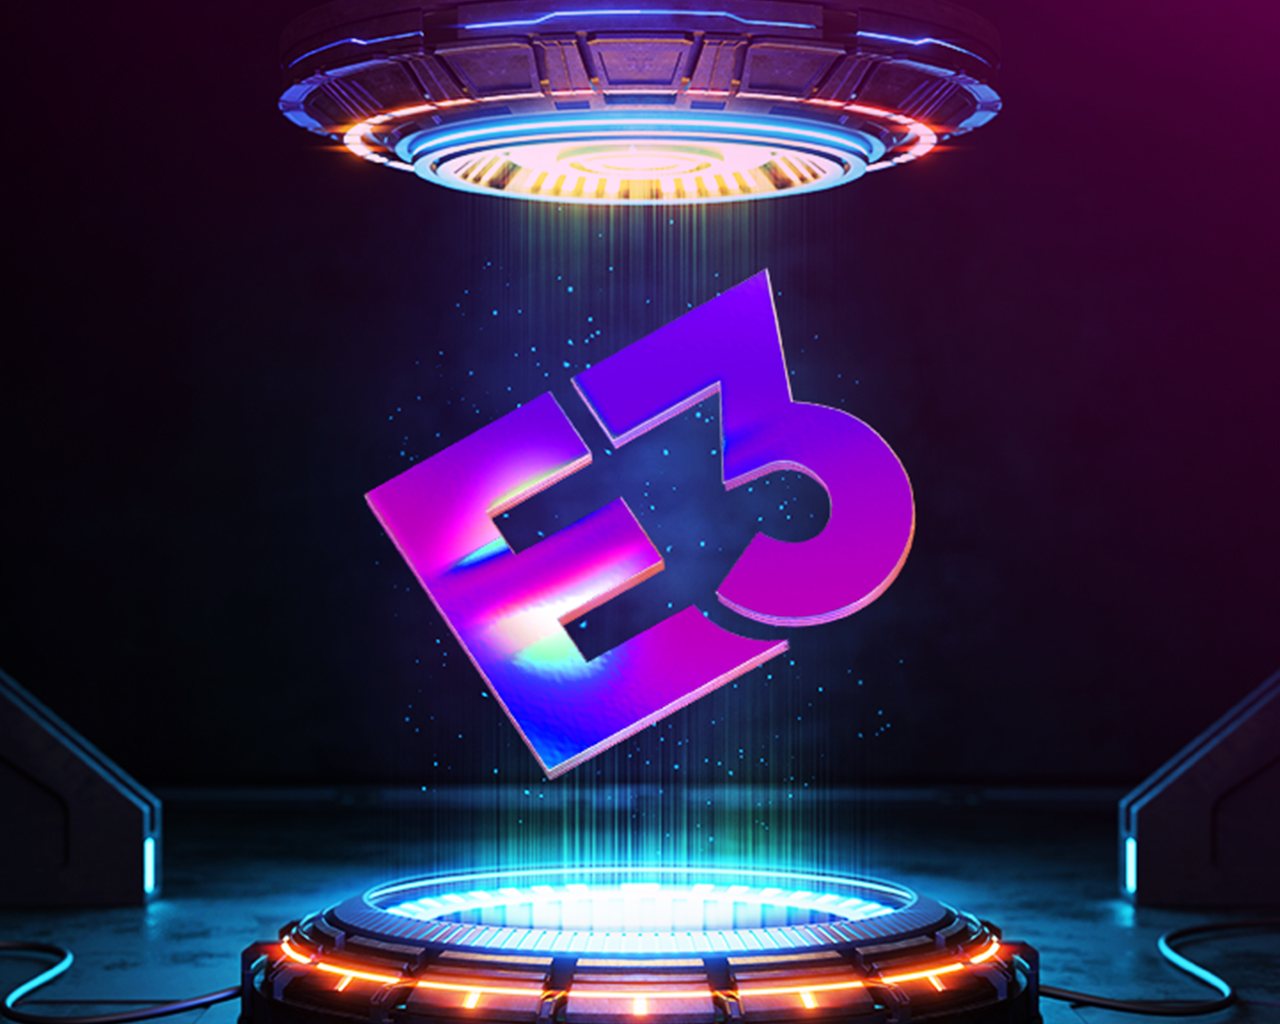 Angled E3 logo being transported through a science-fiction inspired portal